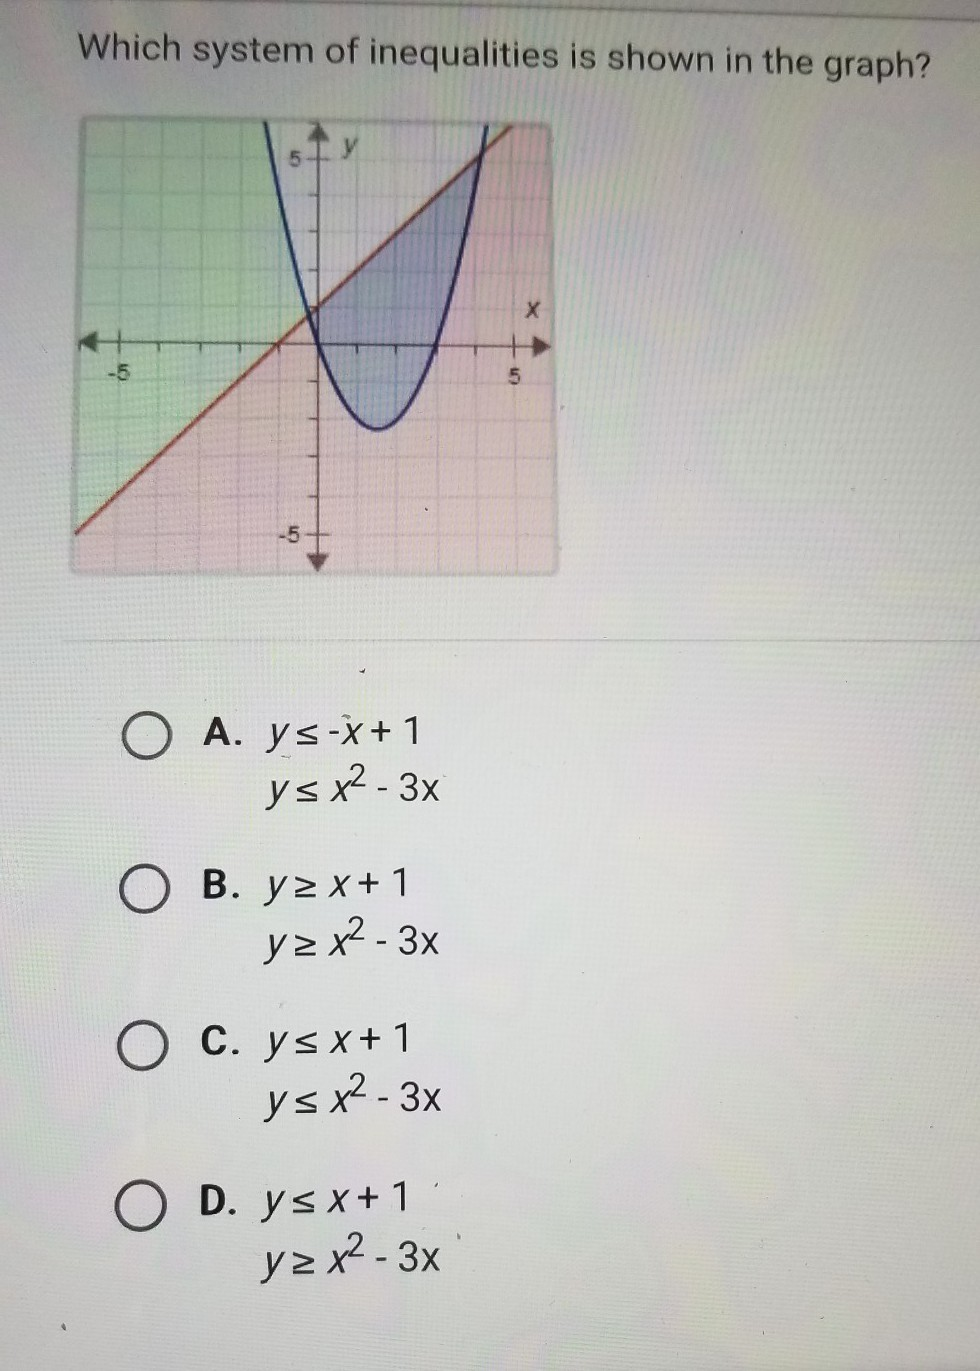 which system of inequalities is shown in the graph